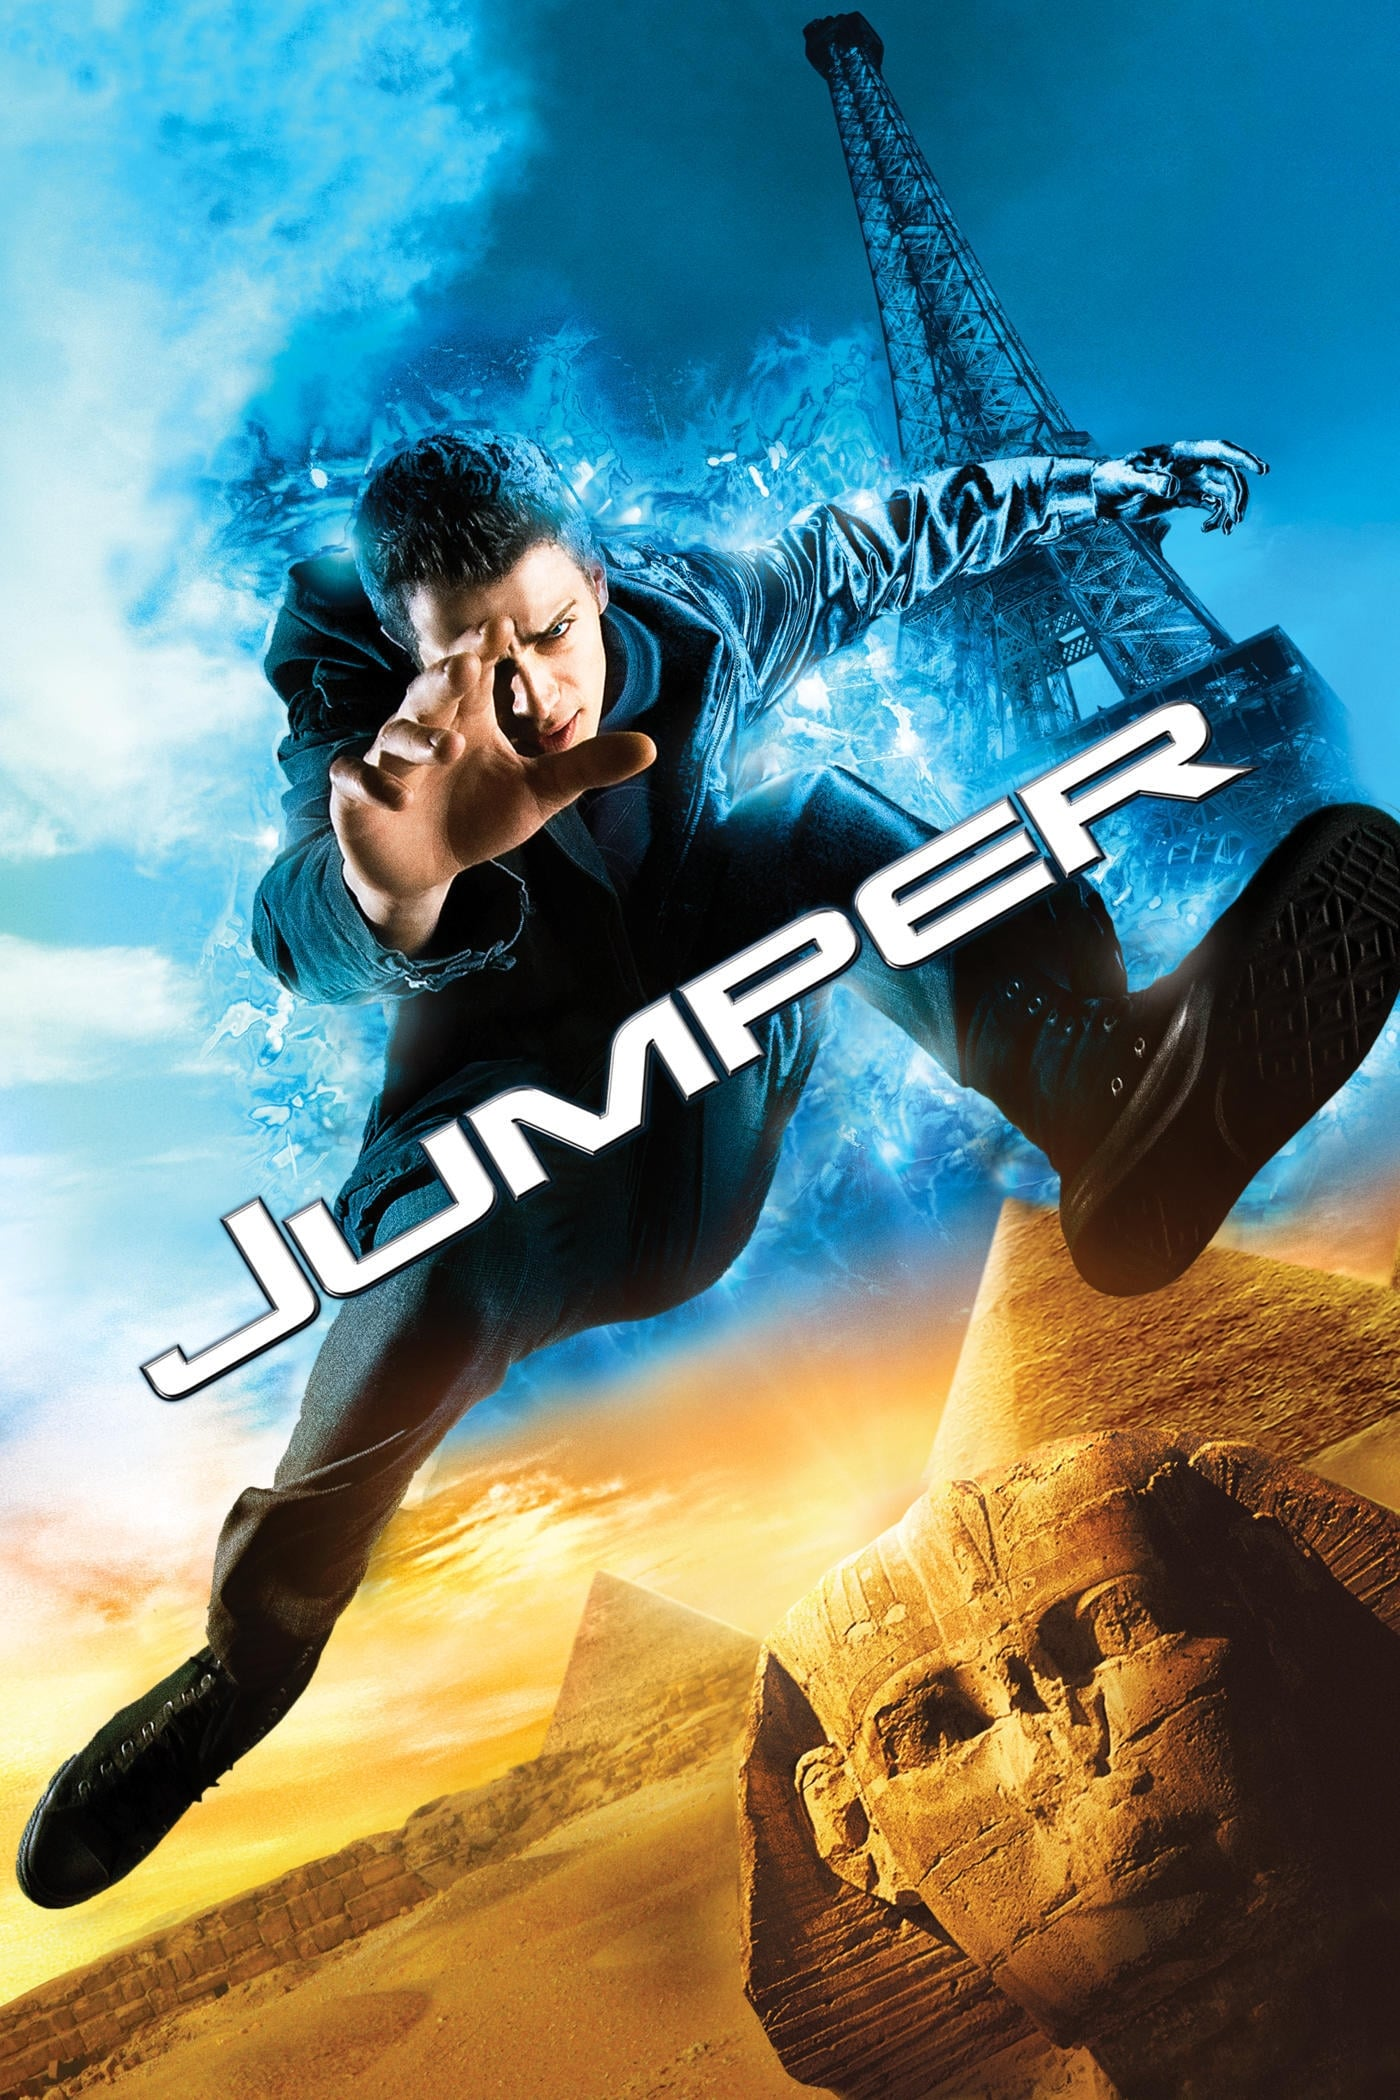 jumper 2008 posters � the movie database tmdb